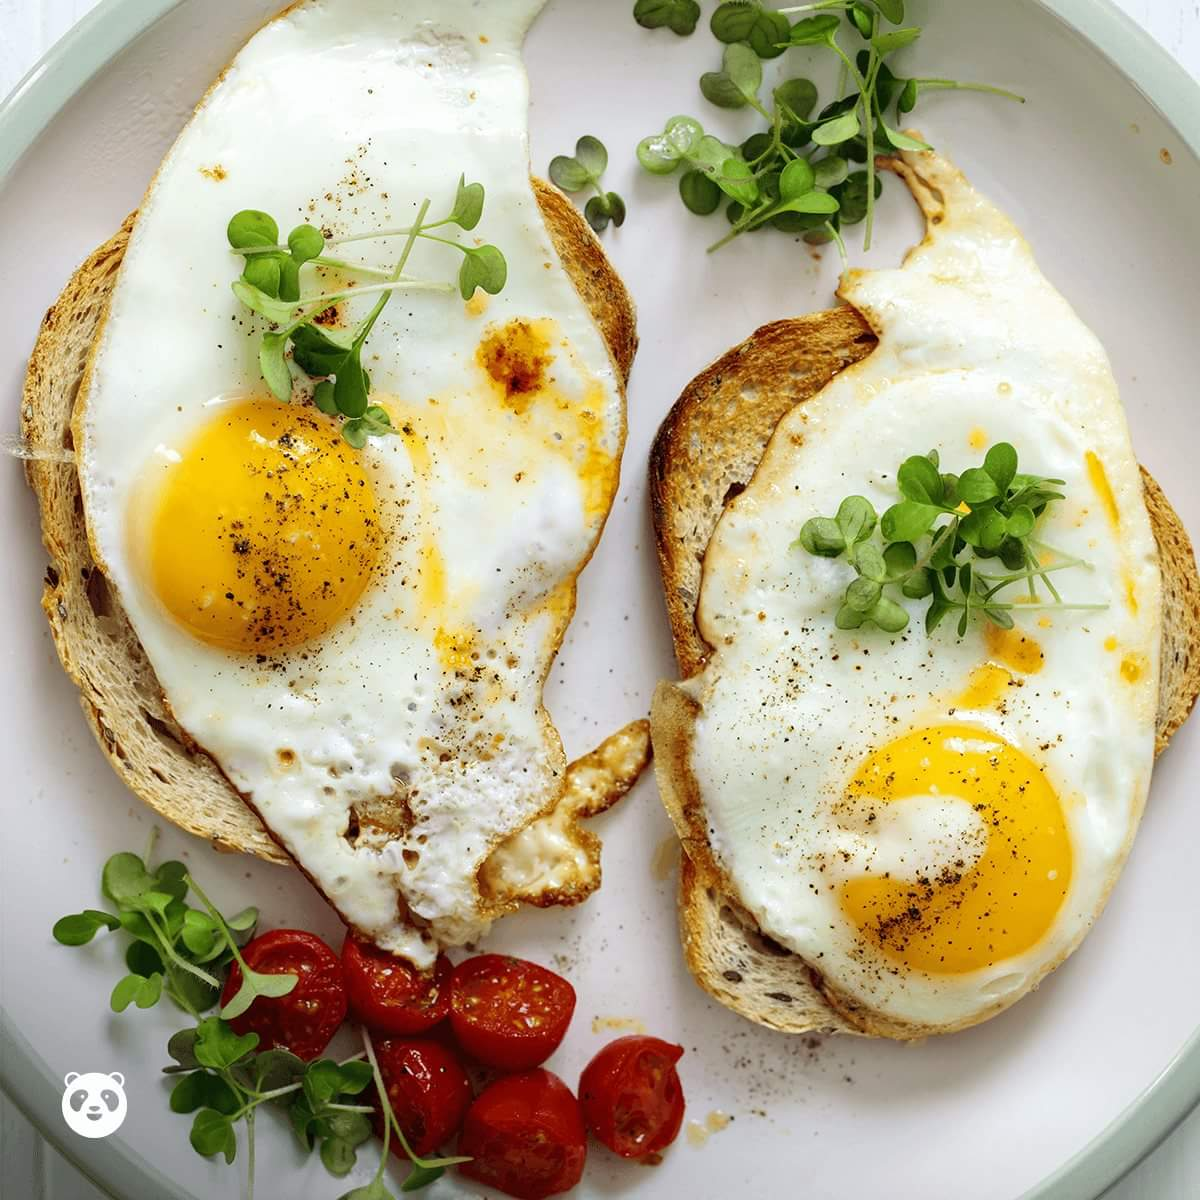 Add These Ingredients to Your Eggs if You Want to Lose Weight Fast